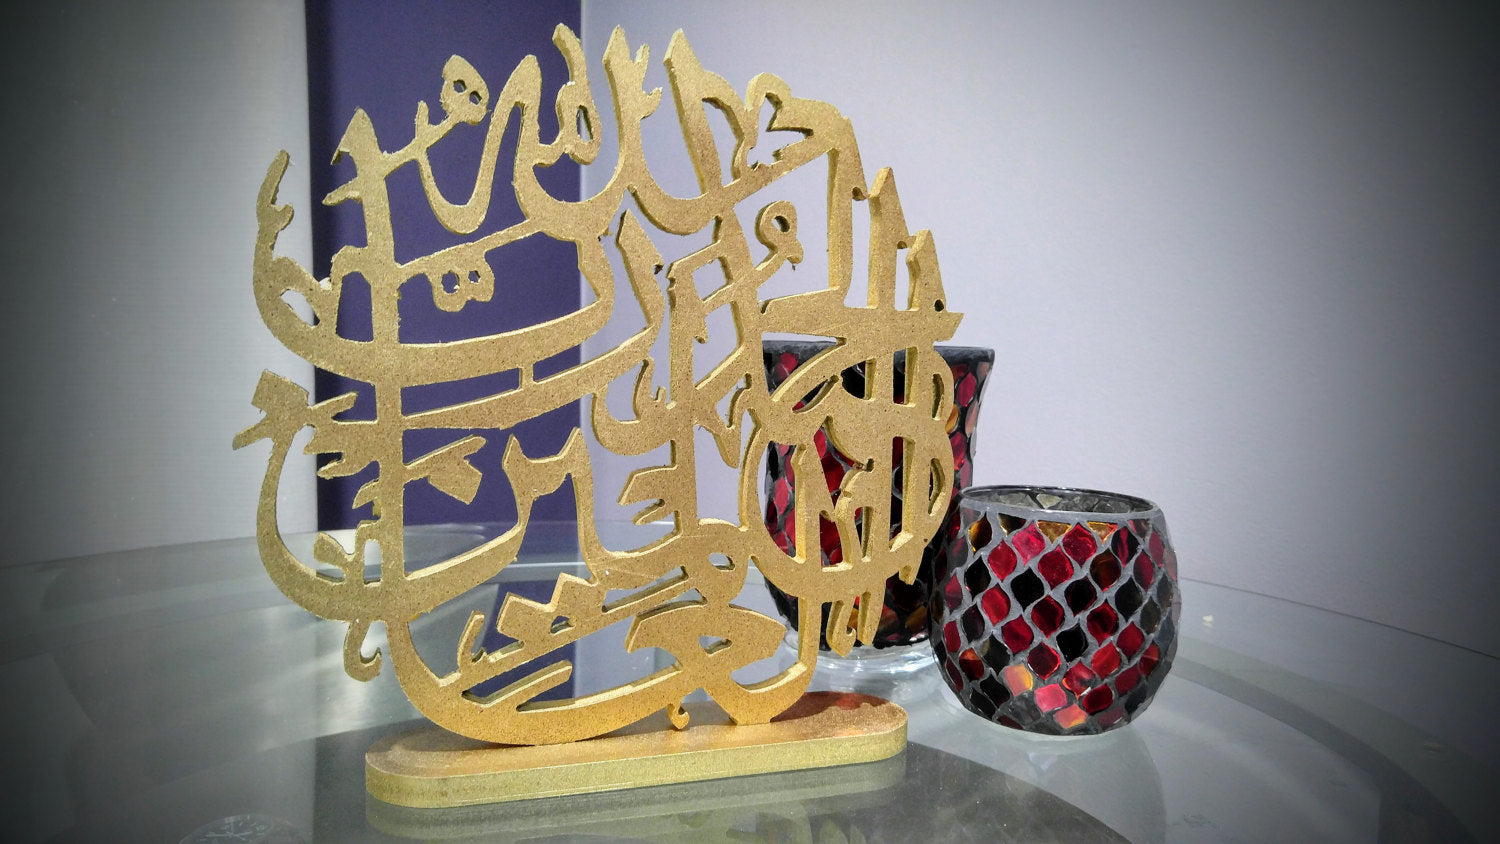 Allhamdullilah Circular Design table top artwork